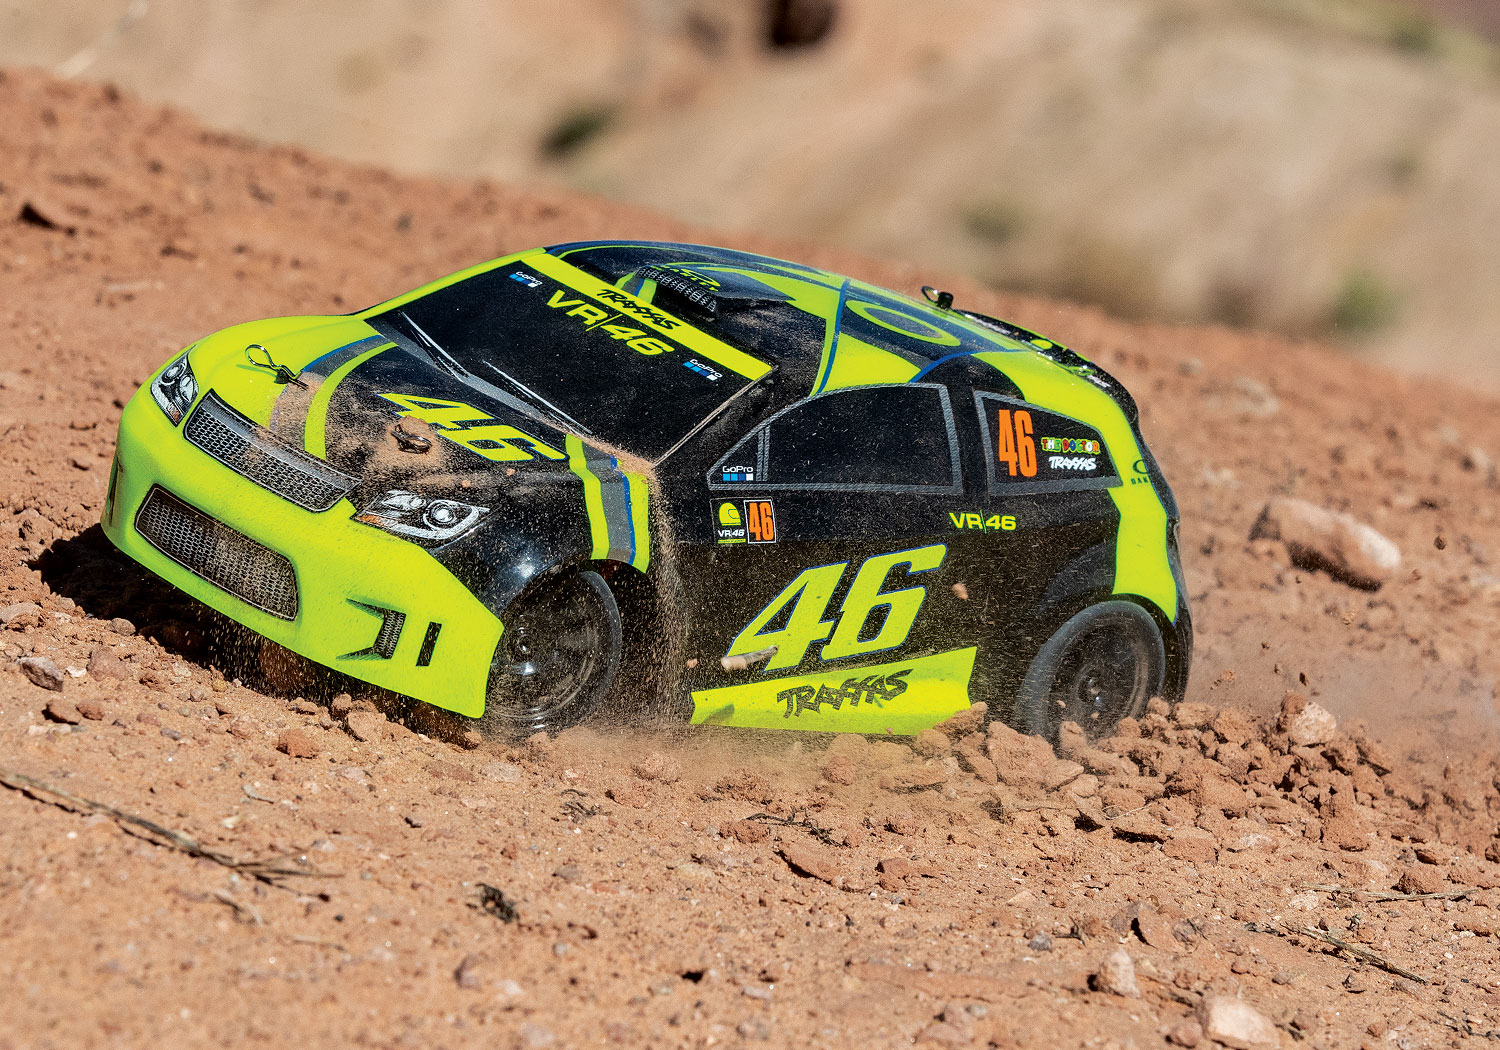 LaTrax Valentino Rossi Rally Car - Dirty